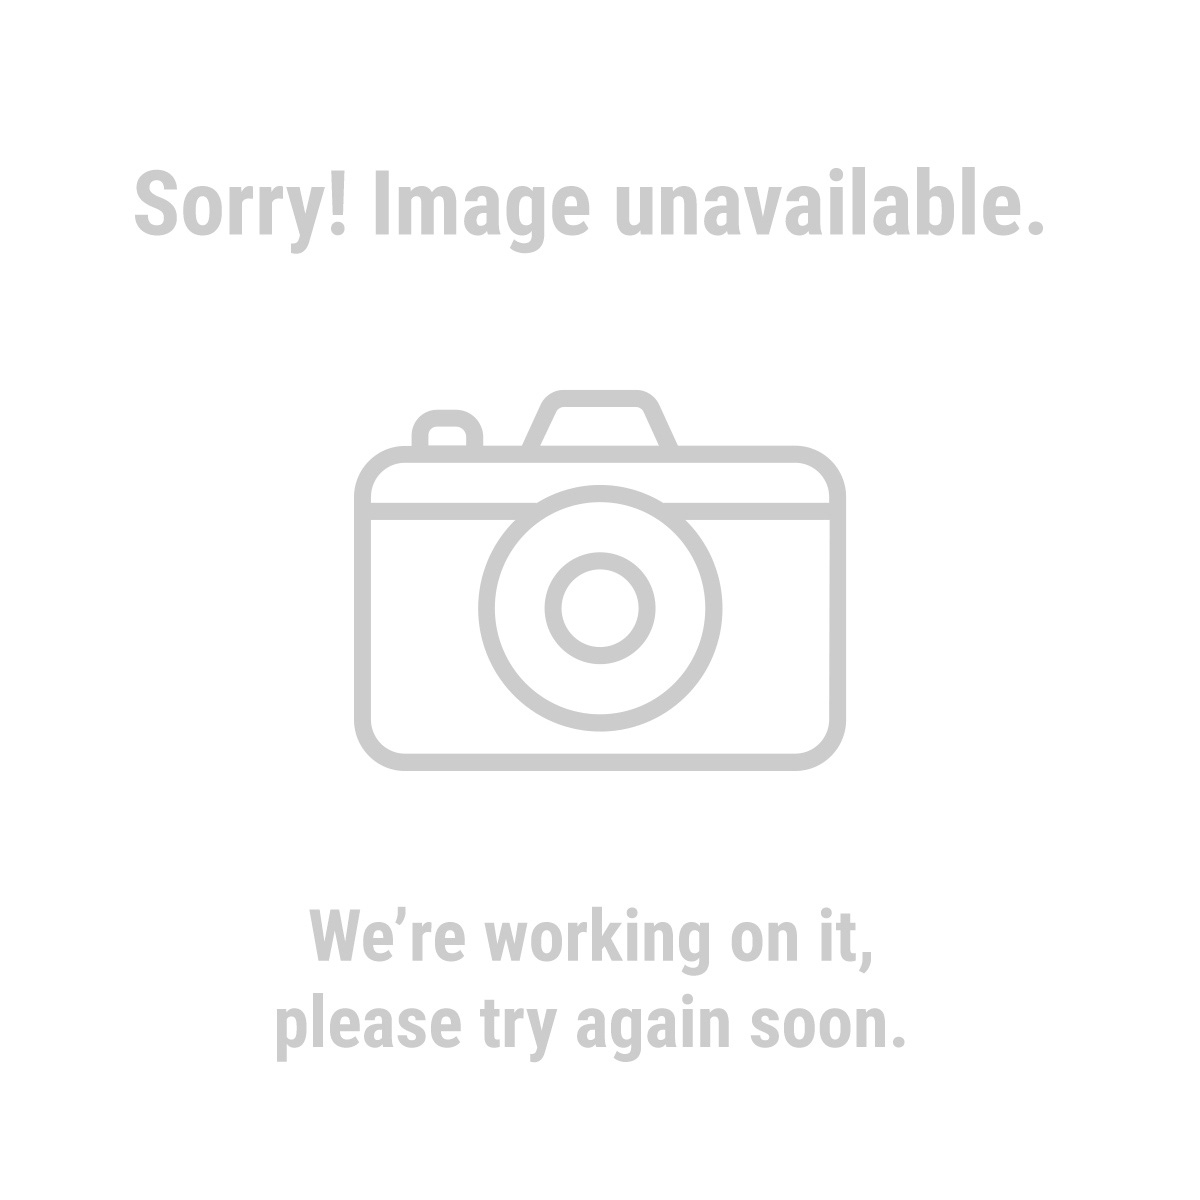 Western Safety Gloves 97404 Nylon Knit Gloves with Polyurethane Palm, Medium